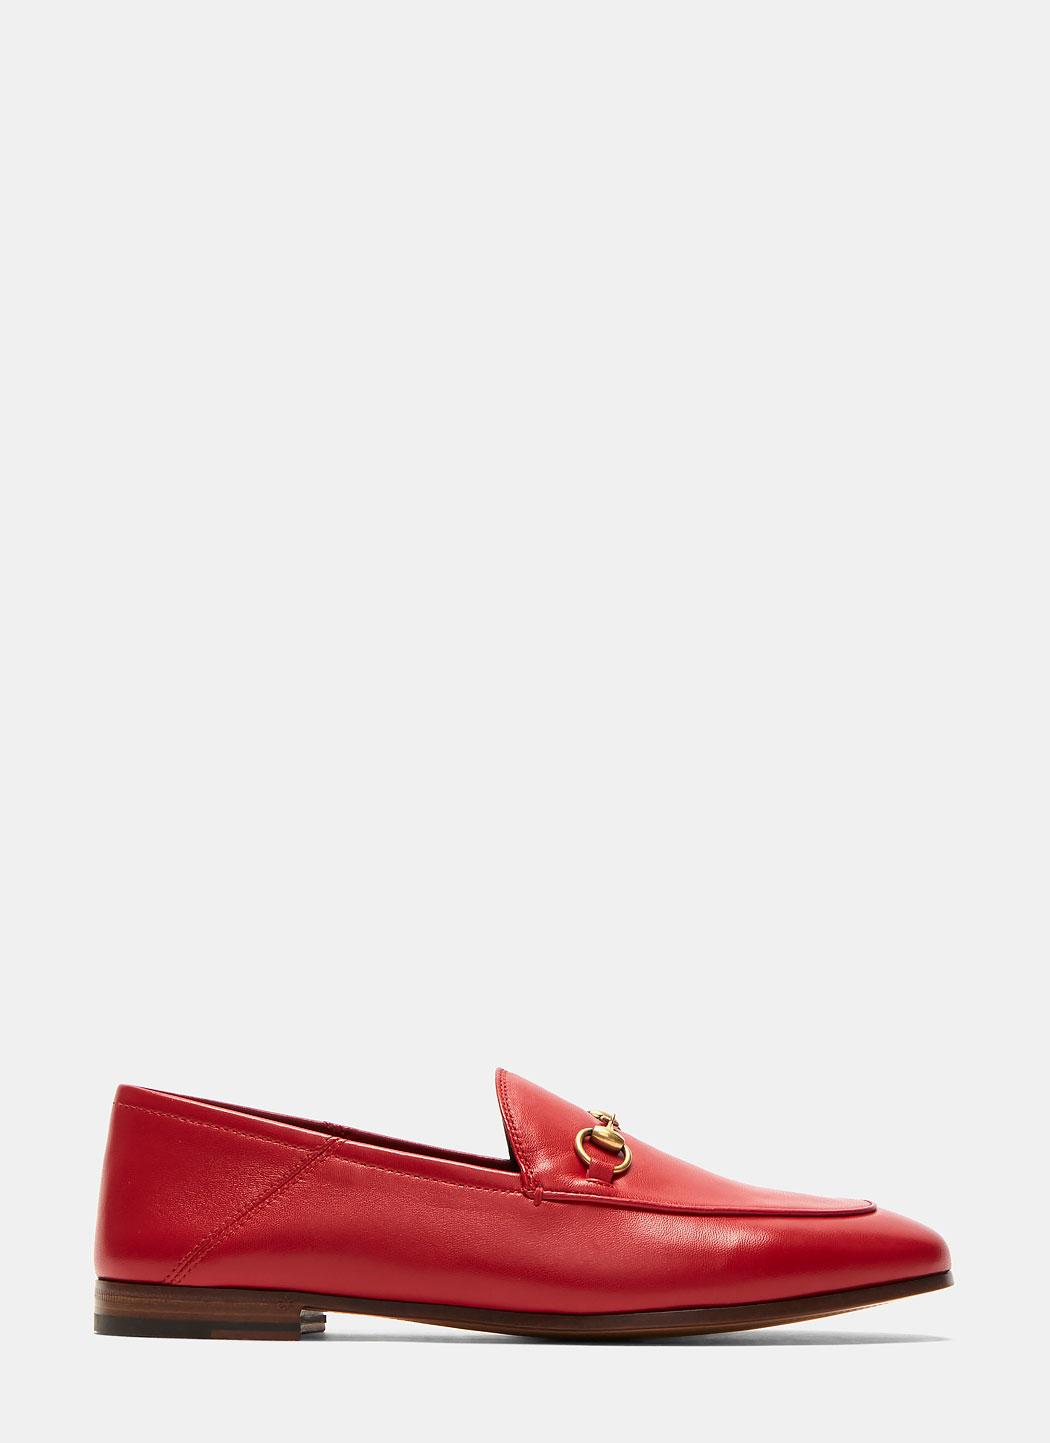 Gucci Women S Jordaan Classic Leather Slip On Loafers In